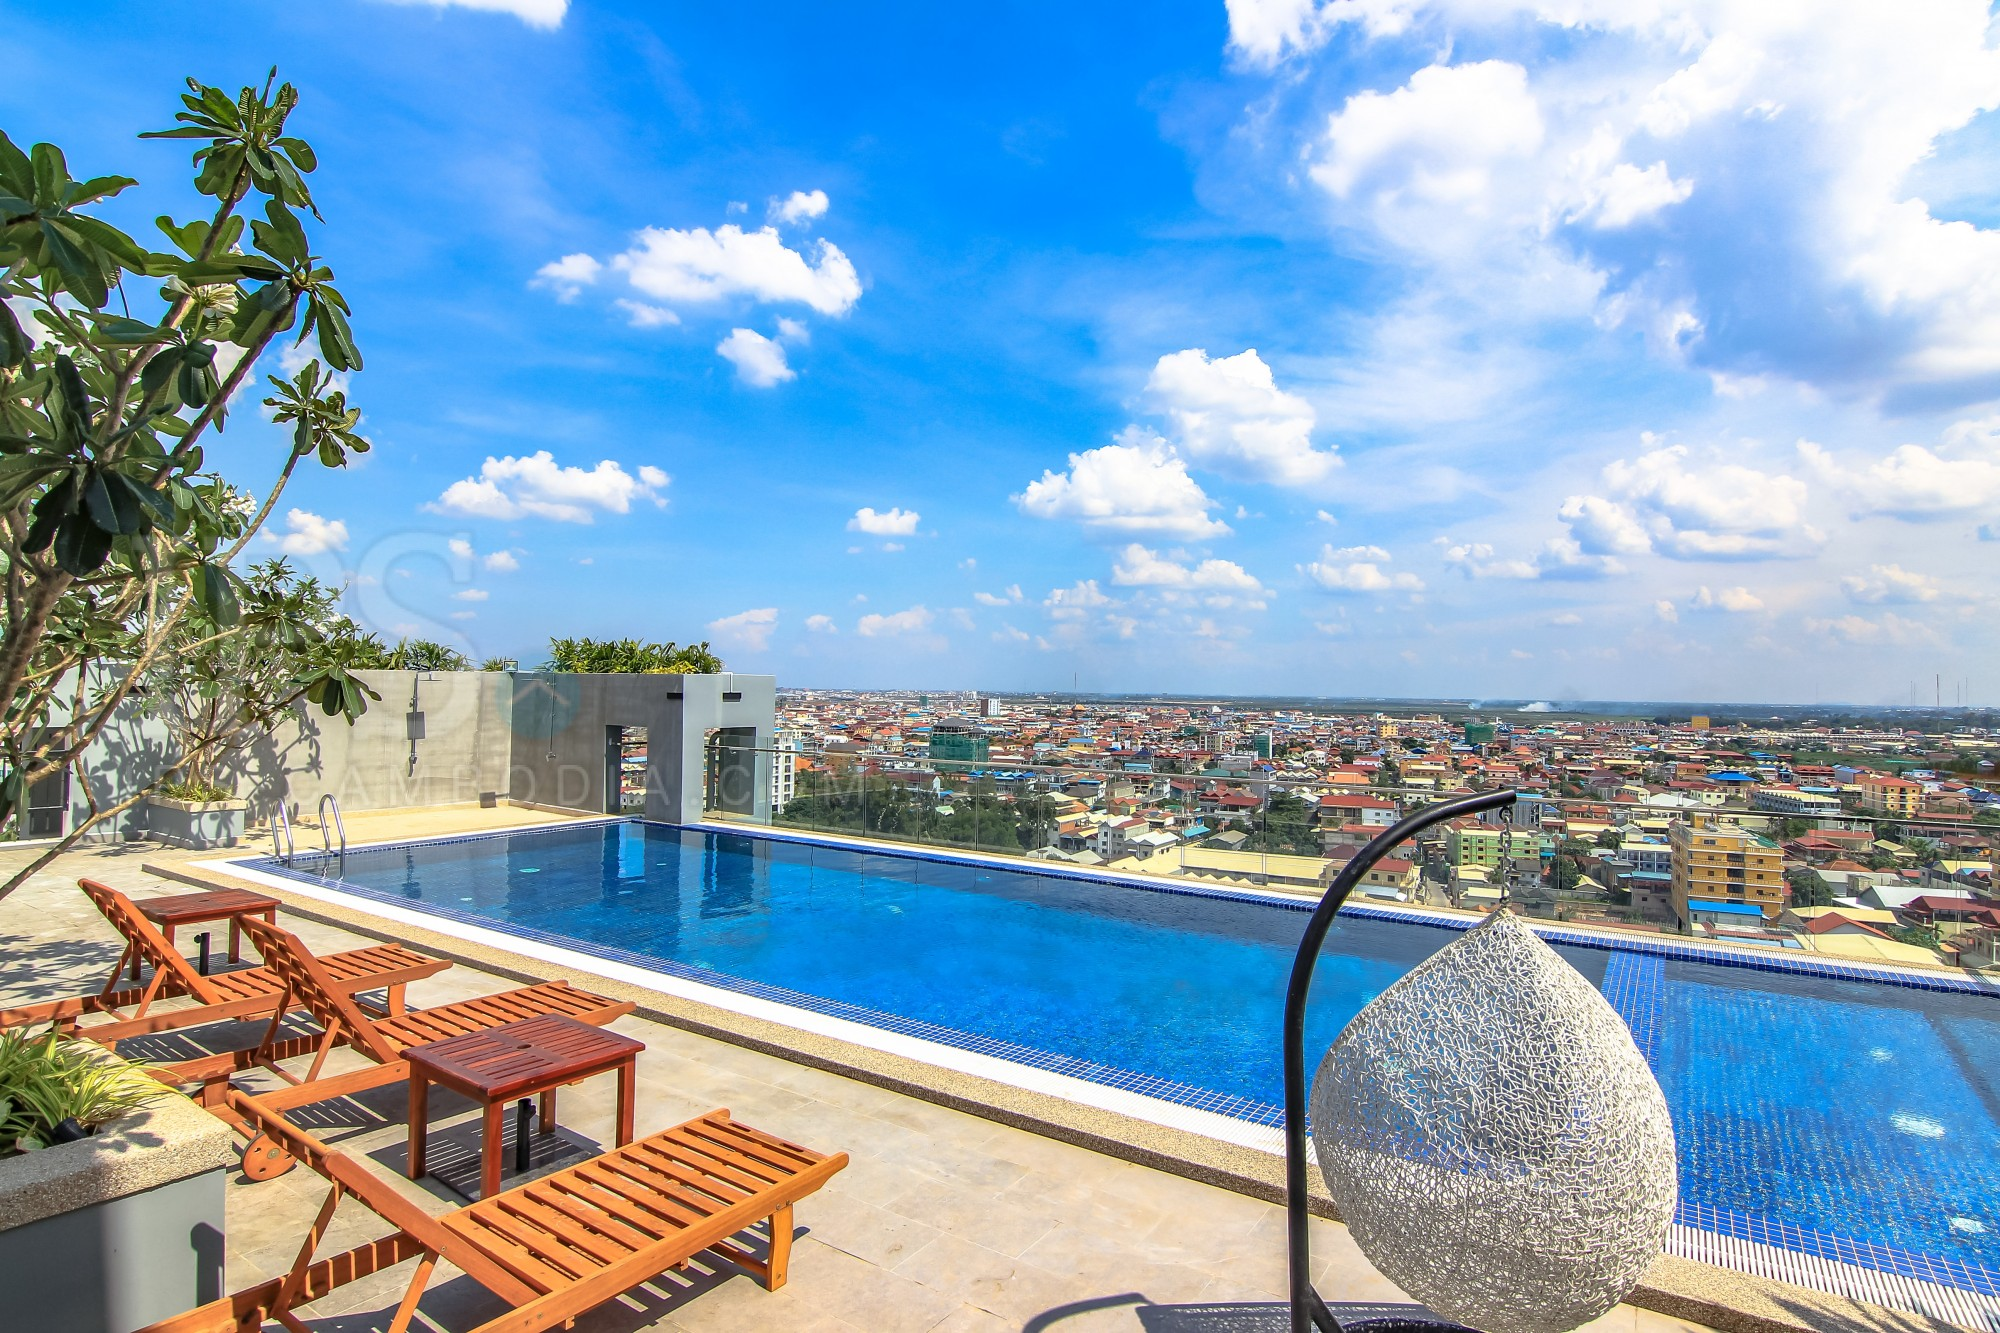 3 Bedroom Condo For Rent - Boeung Tumpun, Phnom Penh